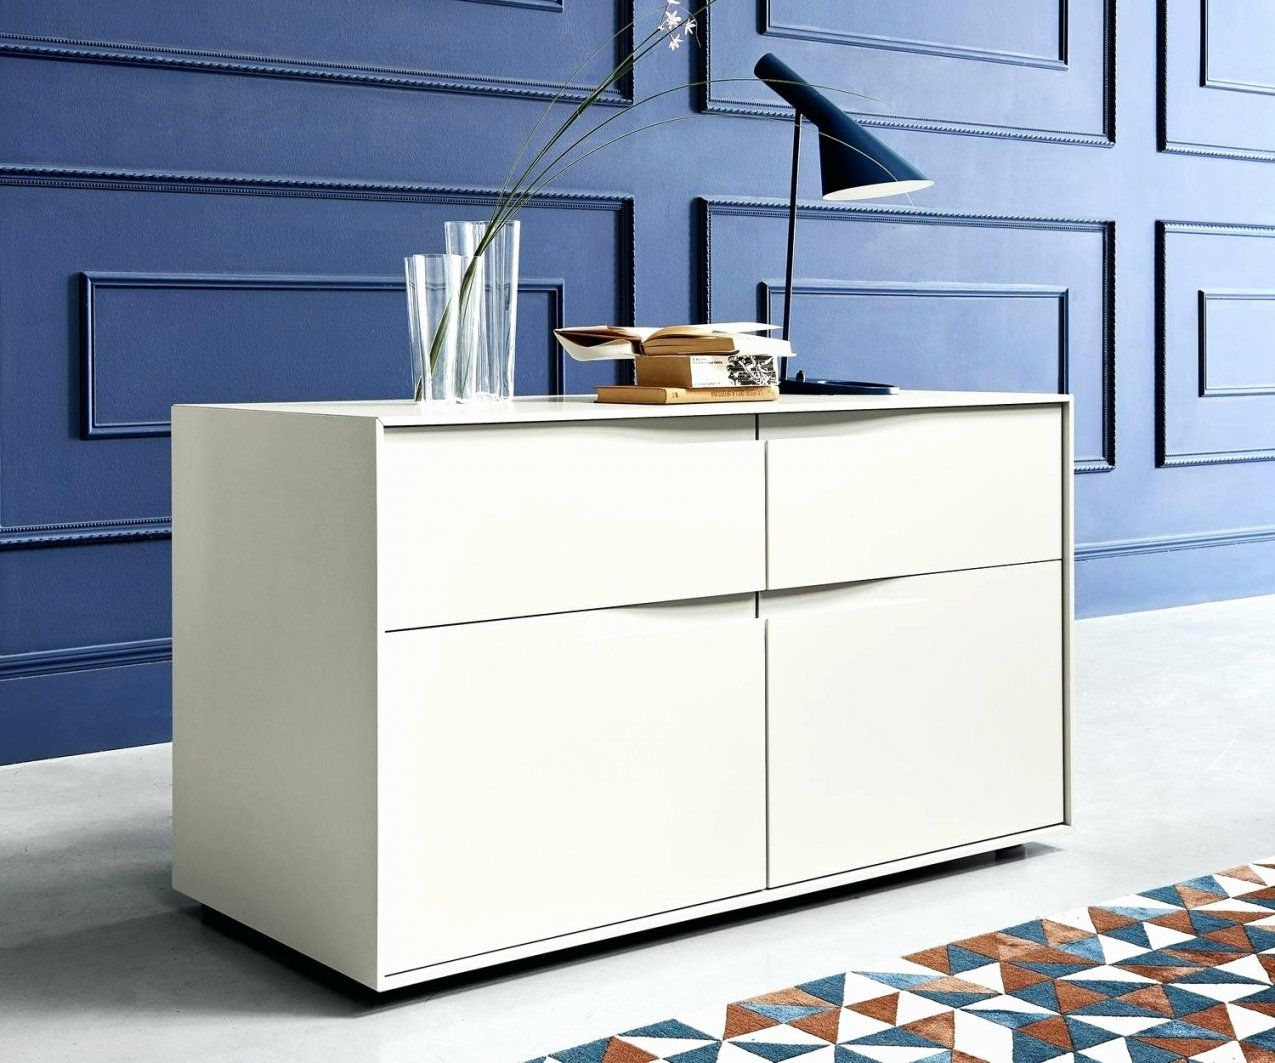 180 cm hoch great 180 cm hoch with 180 cm hoch good 180 cm hoch with 180 cm hoch excellent. Black Bedroom Furniture Sets. Home Design Ideas